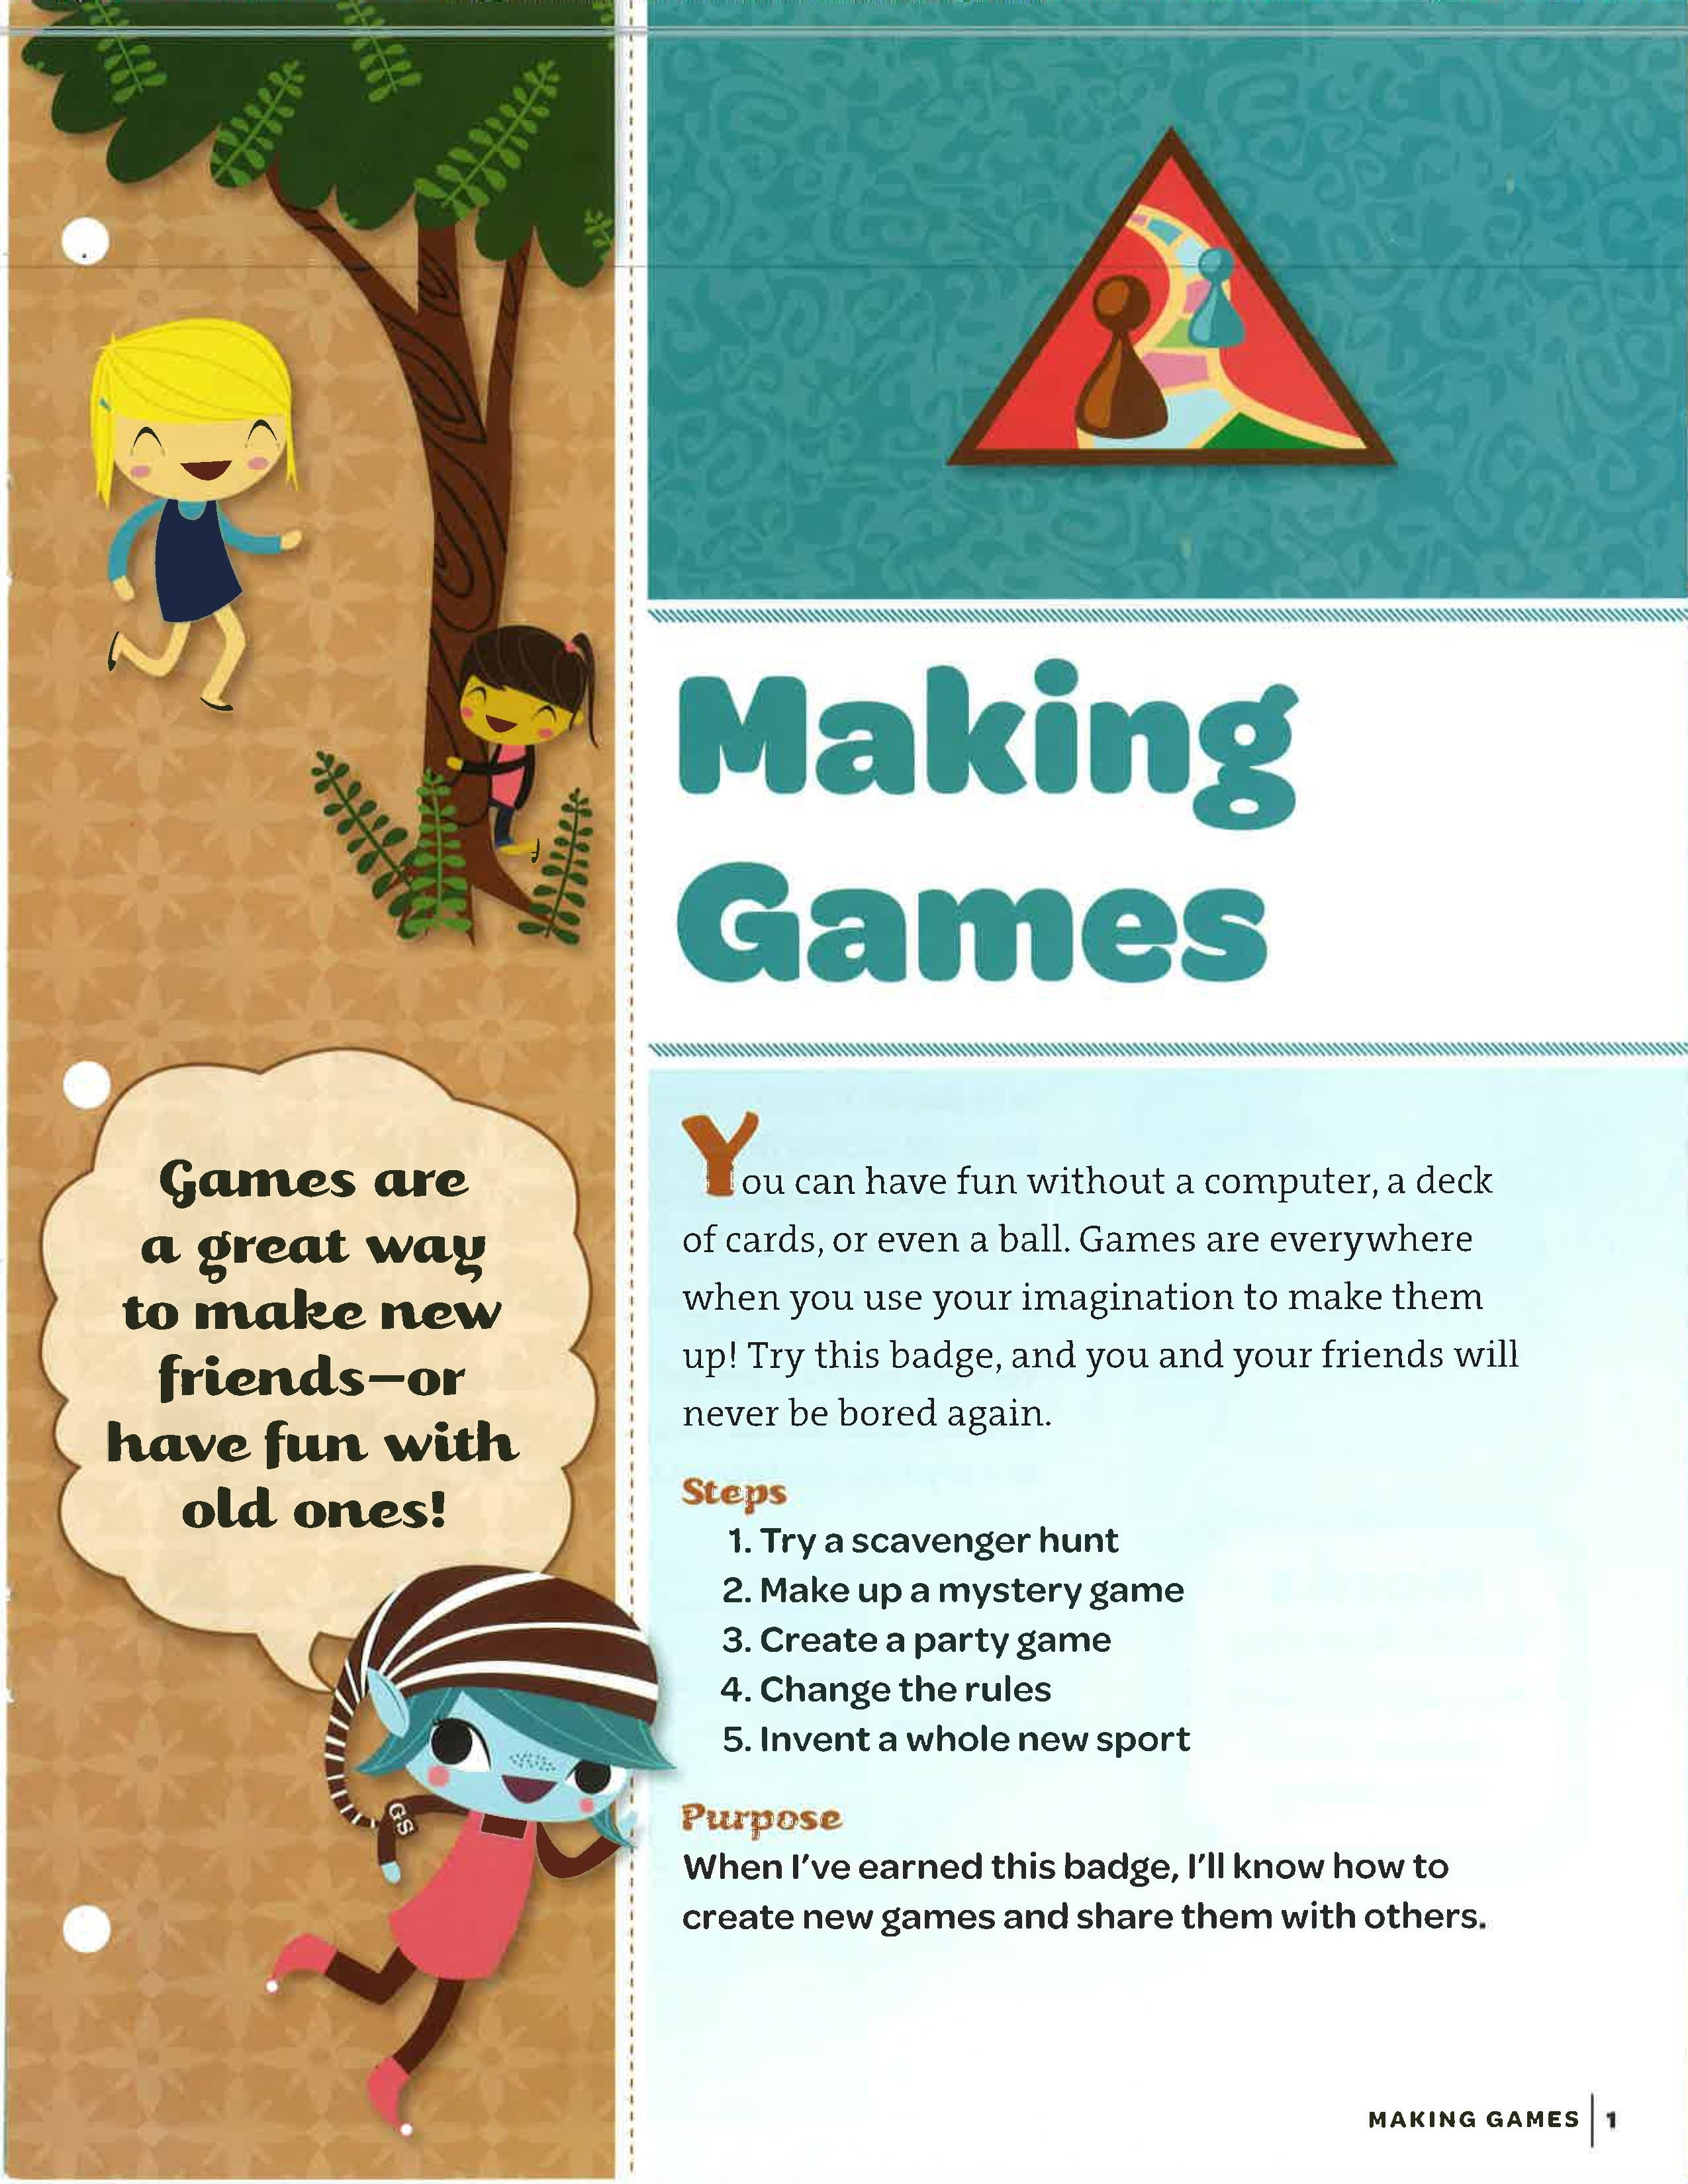 A World Of Girls Skill Building Badge Making Games